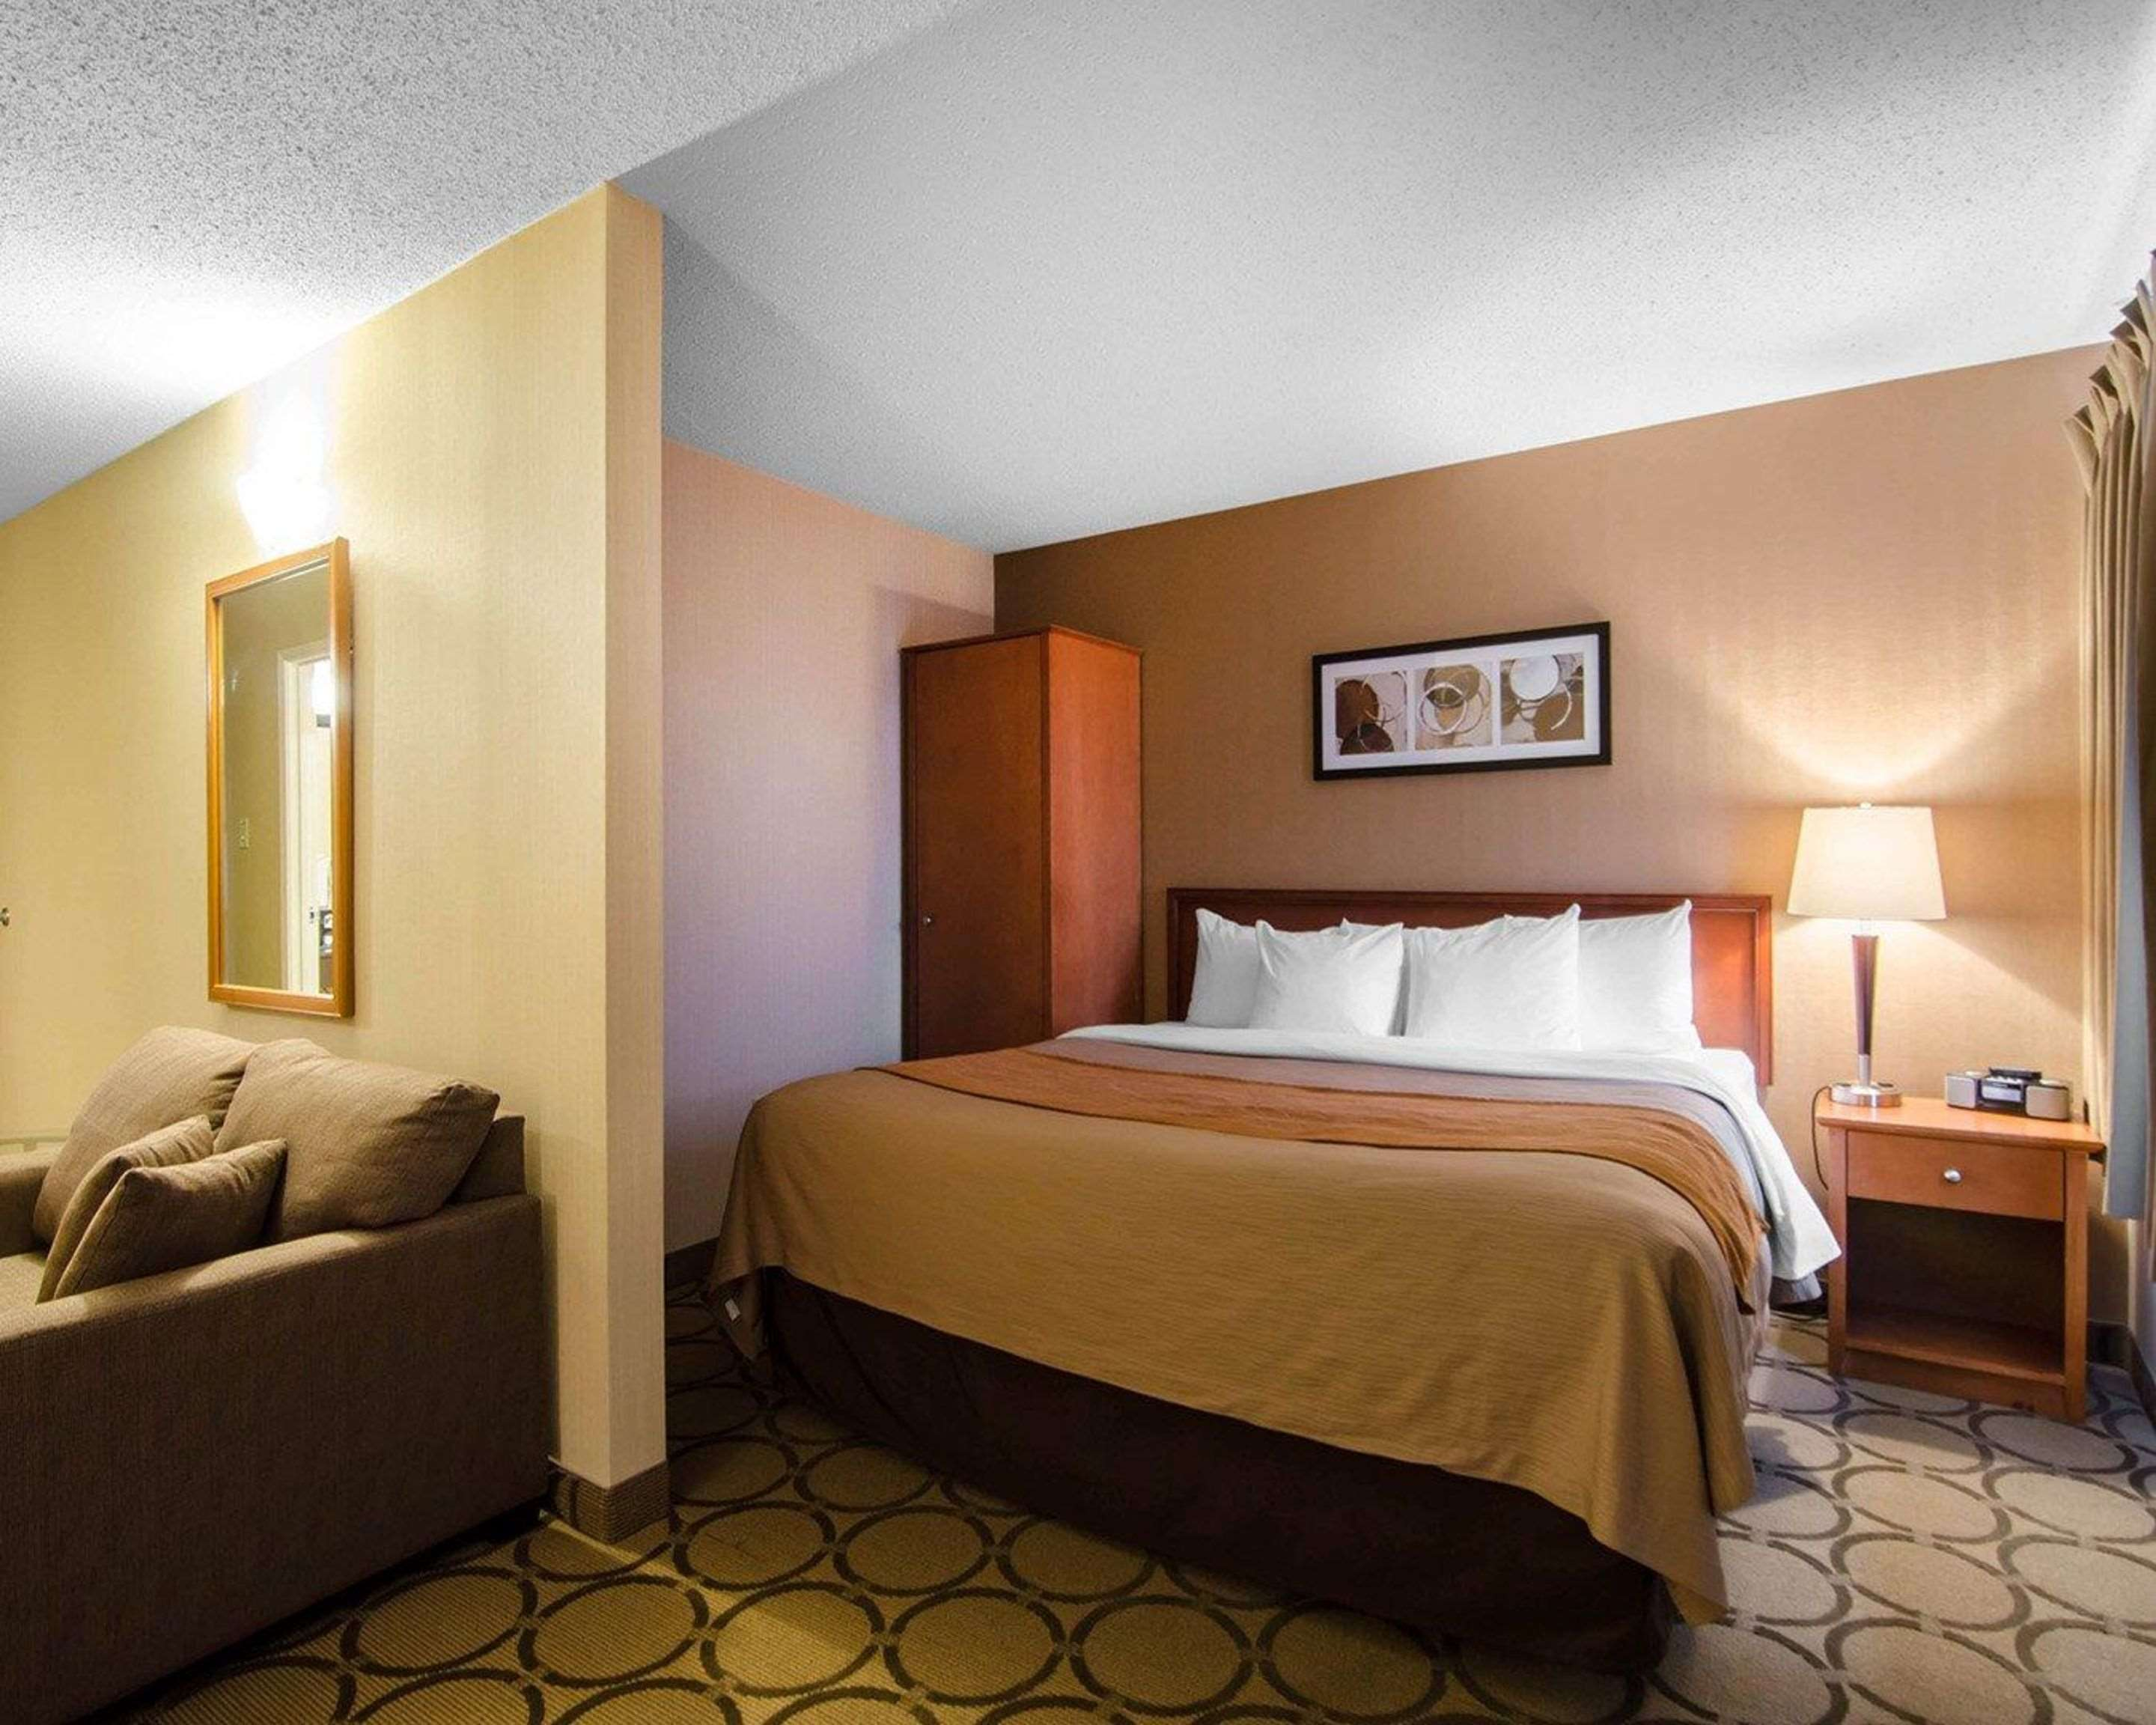 Comfort Inn in Saskatoon: Guest room with king bed